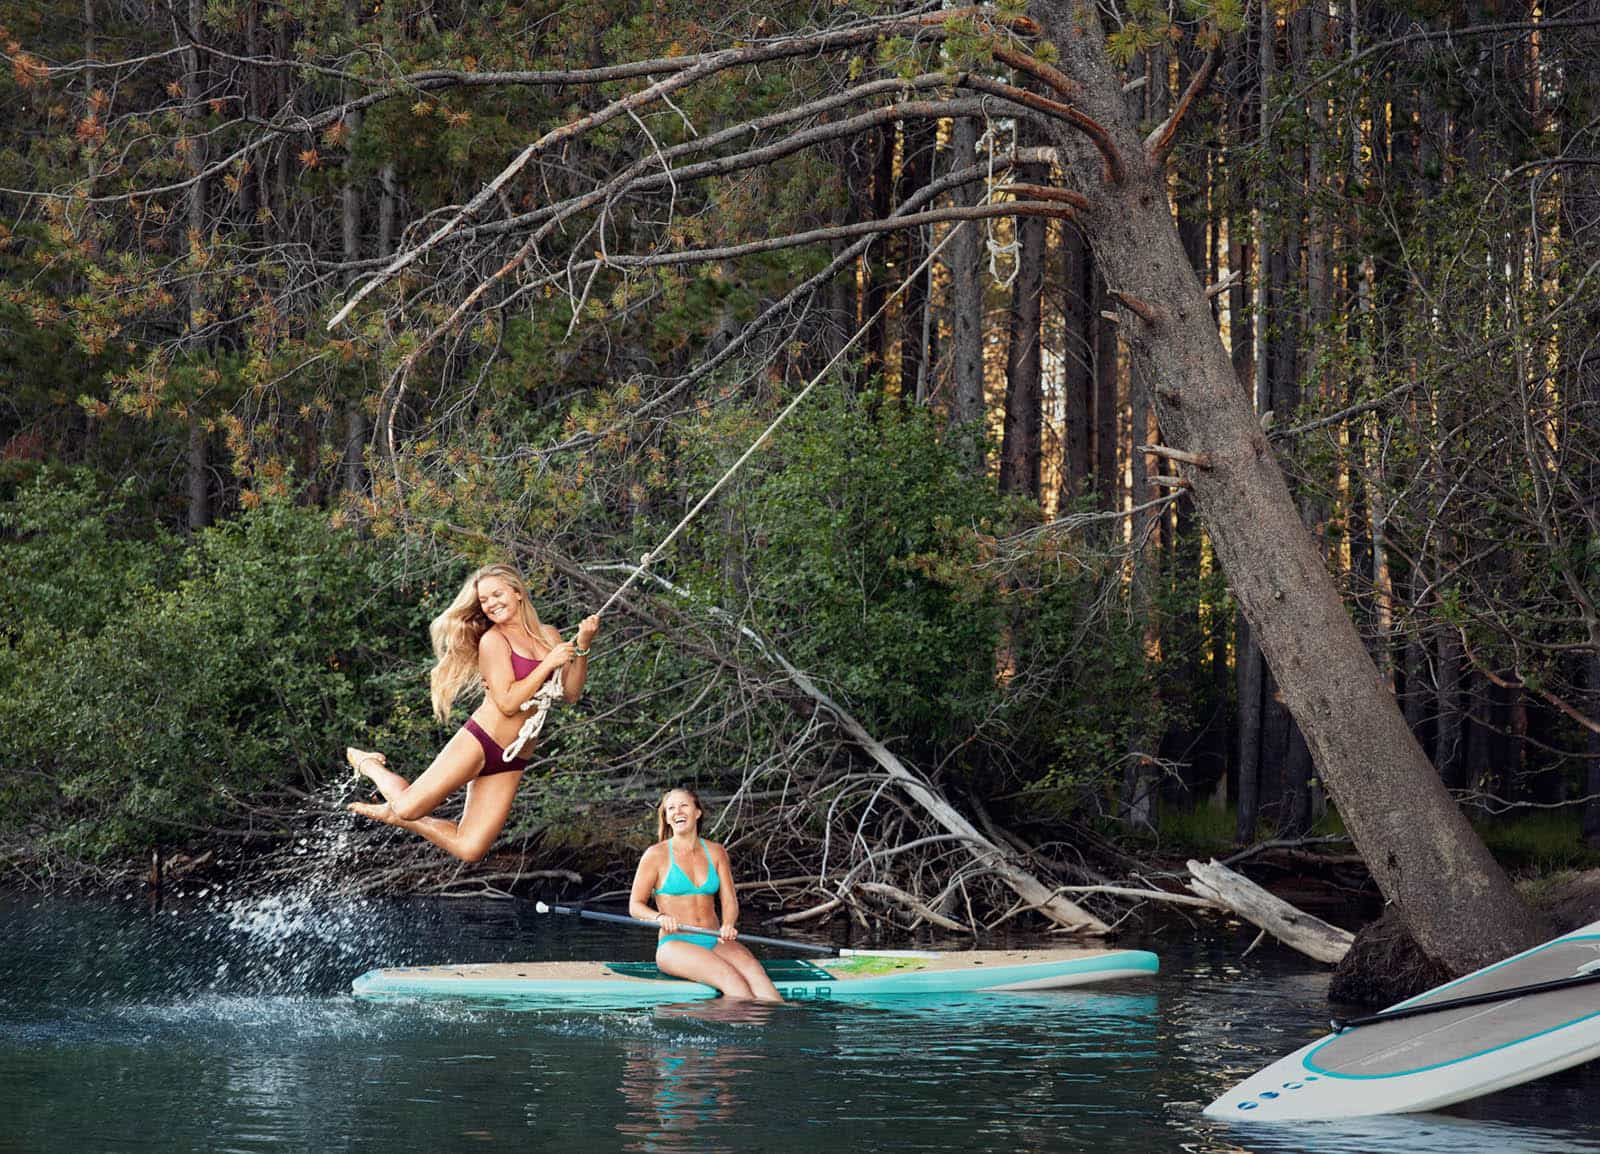 Two girls with paddle boards trying out a rope swing.